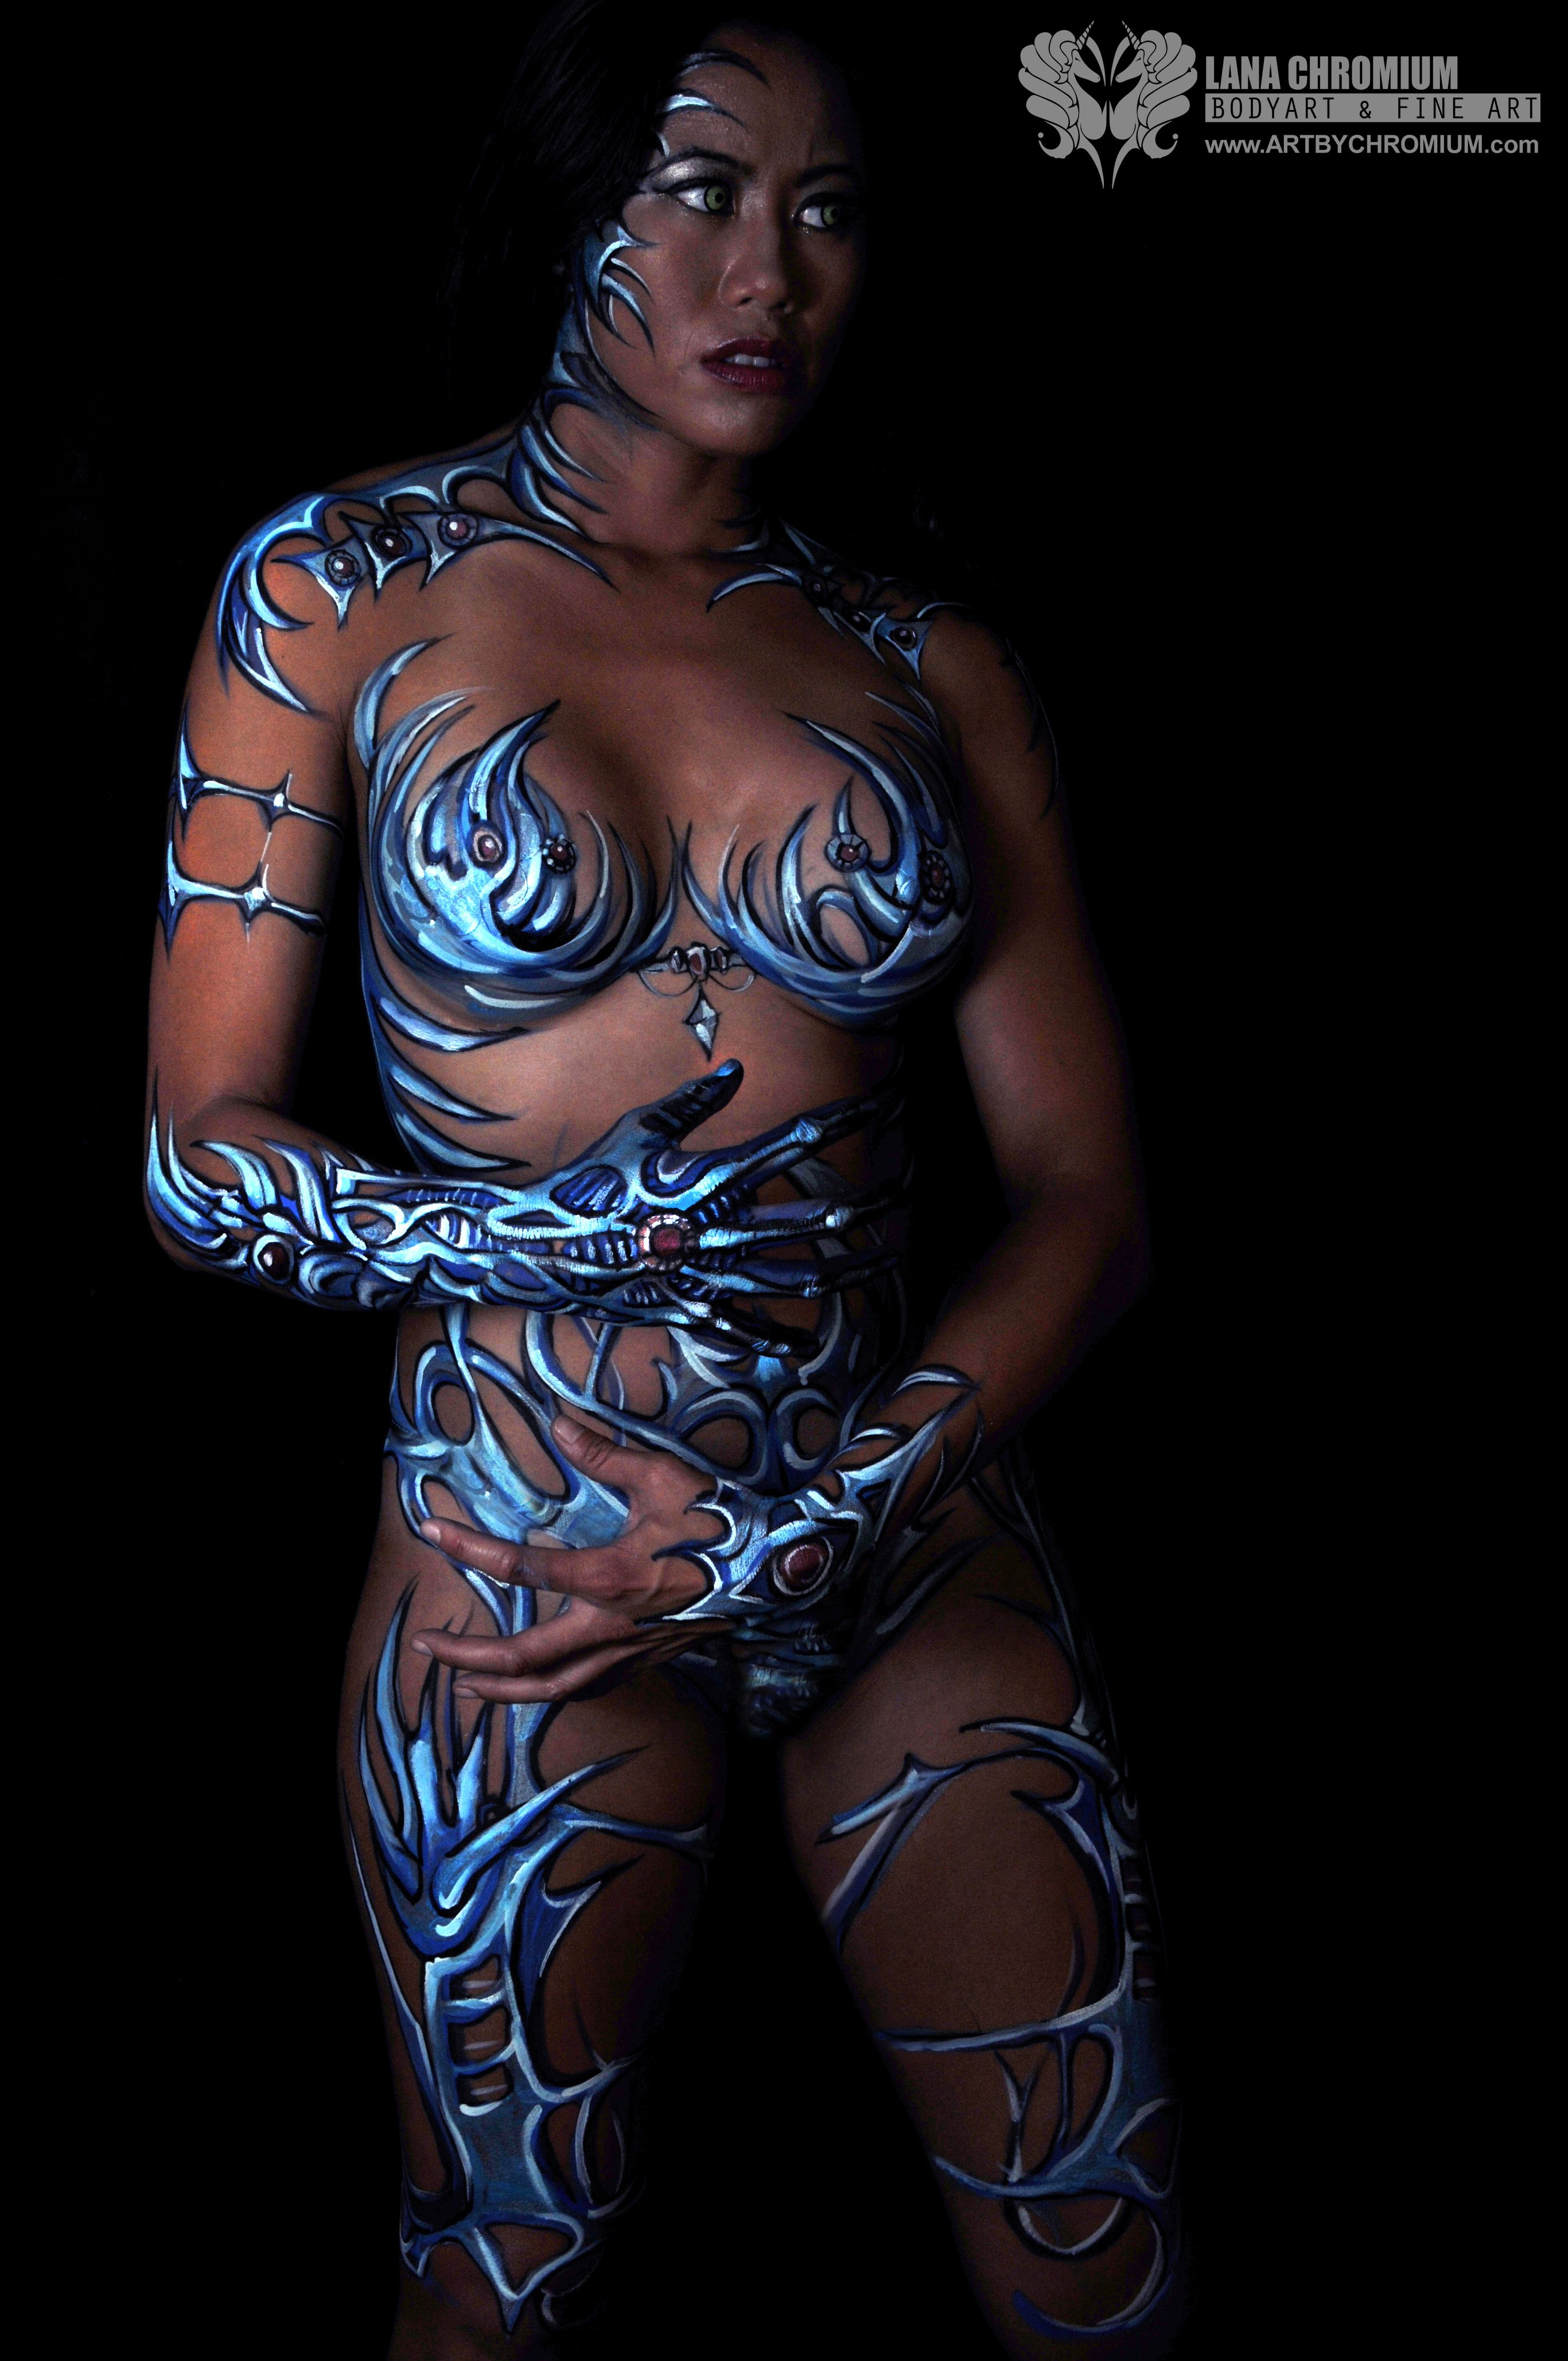 Witchblade Bodypainting By Lana Chromium Makeup Bodyart Bodypaint Fantasy Fest Ideas Cosplay Comiccon Cost Body Painting Body Art Photography Bodypainting